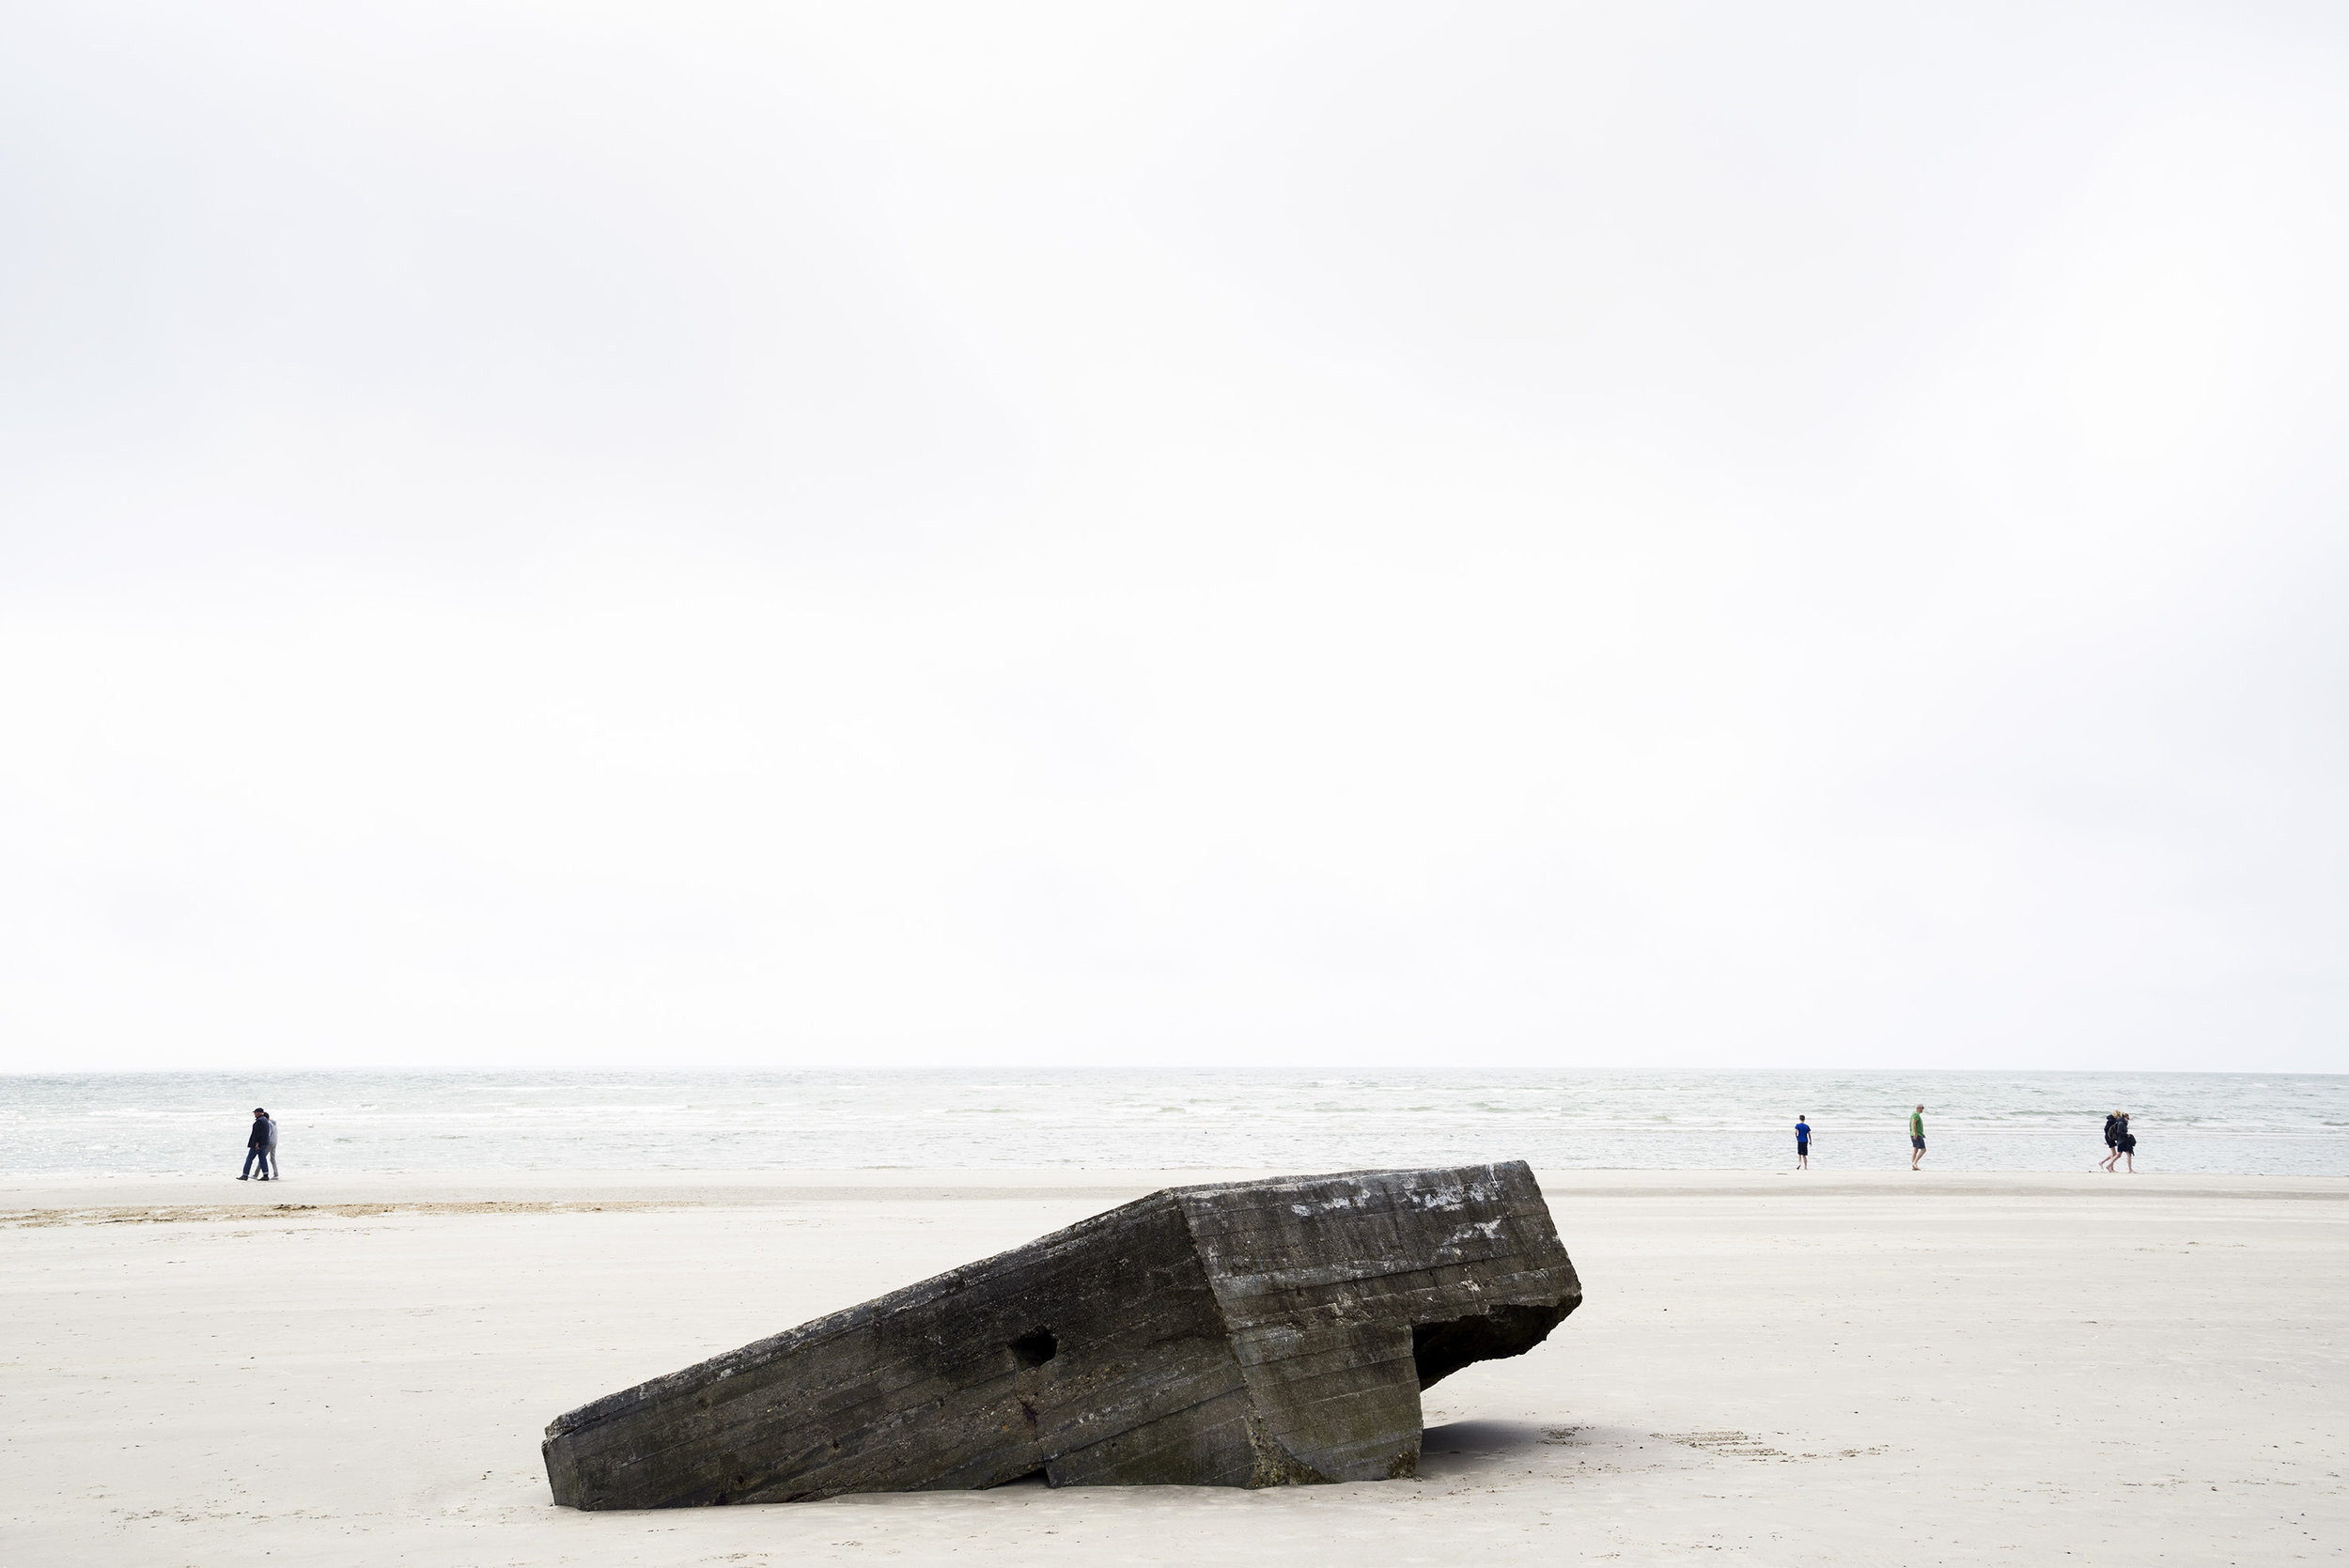 """Roi Kuper, From """"The Atlantic Wall"""" series, 2017"""